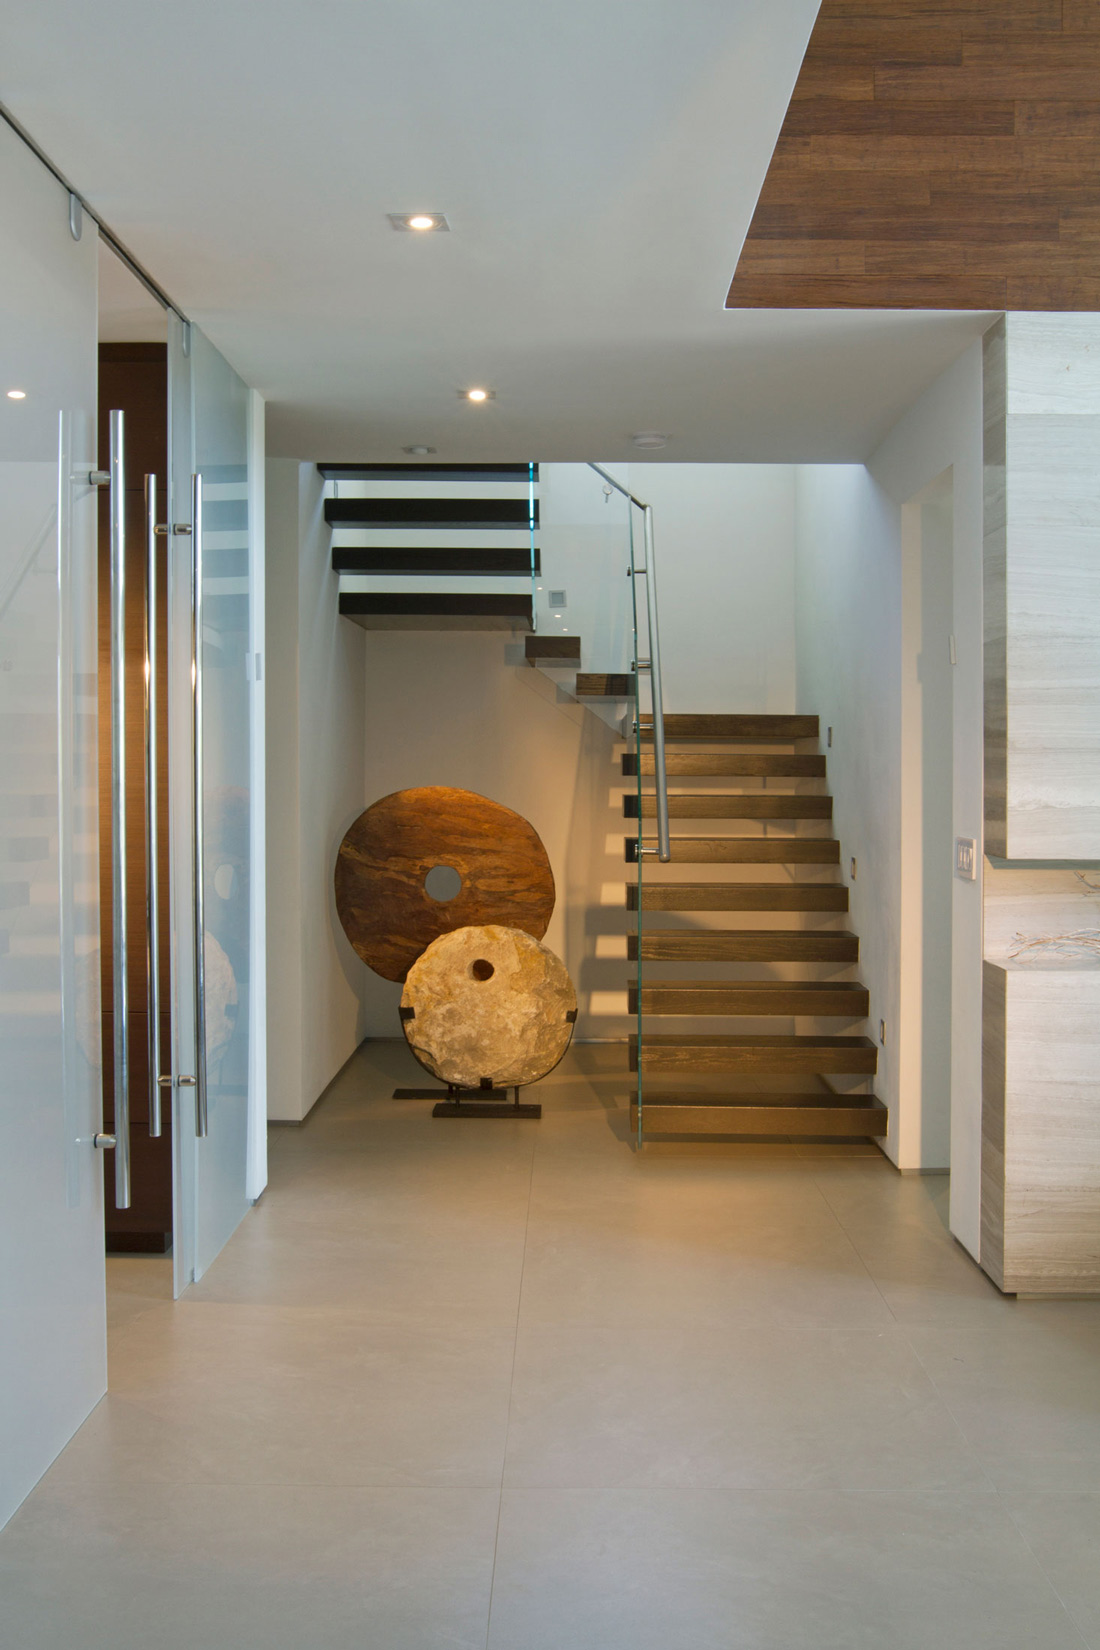 Entrance Hall, Art, Stairs, Stylish Interior Design in Miami, Florida